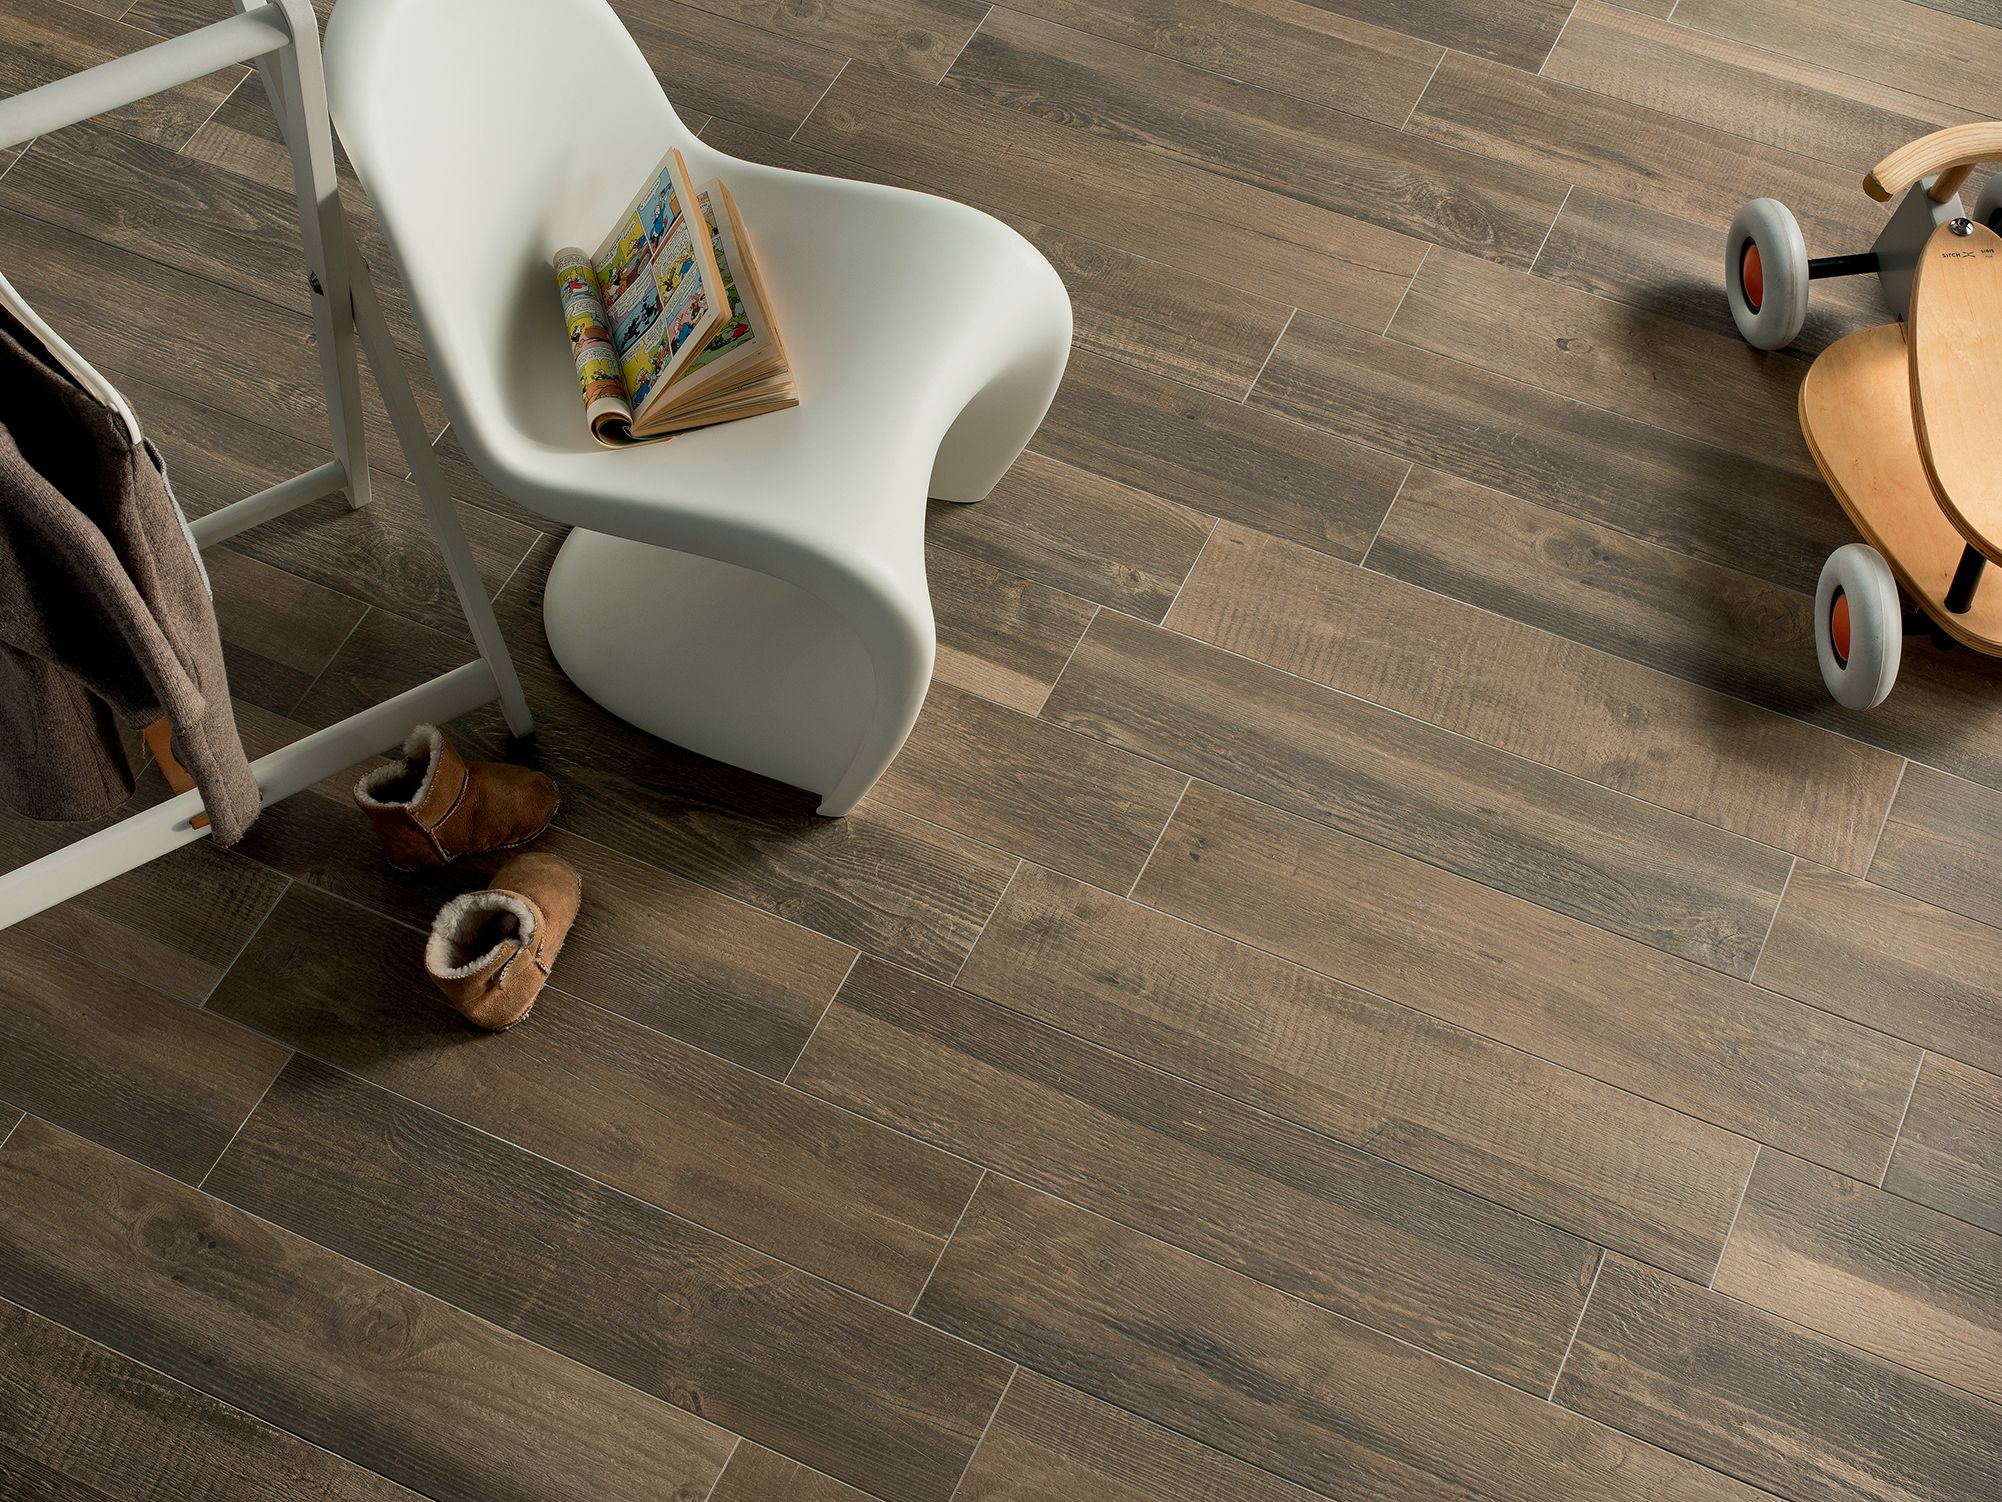 fake wood flooring. Alluring Fake Wood Flooring Idea With Dark Laminate In Walnut Finish And Embossed Scratch Textures For Rustic Inspirations 0